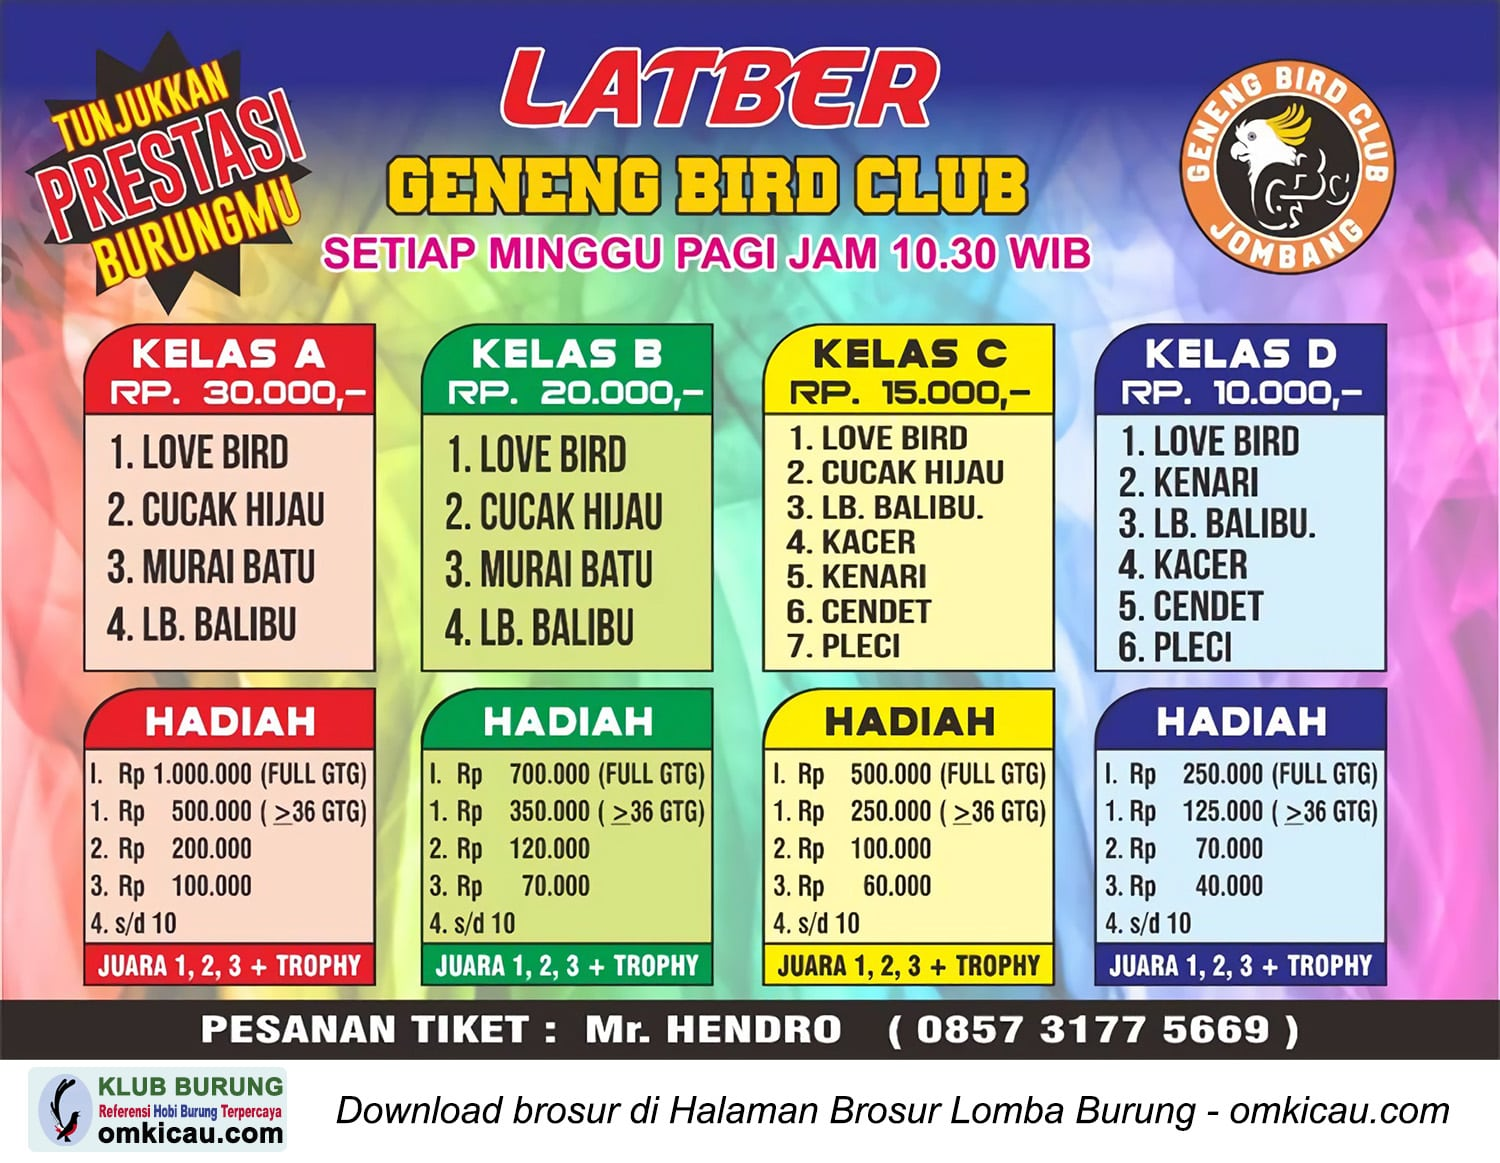 Latber Geneng Bird Club